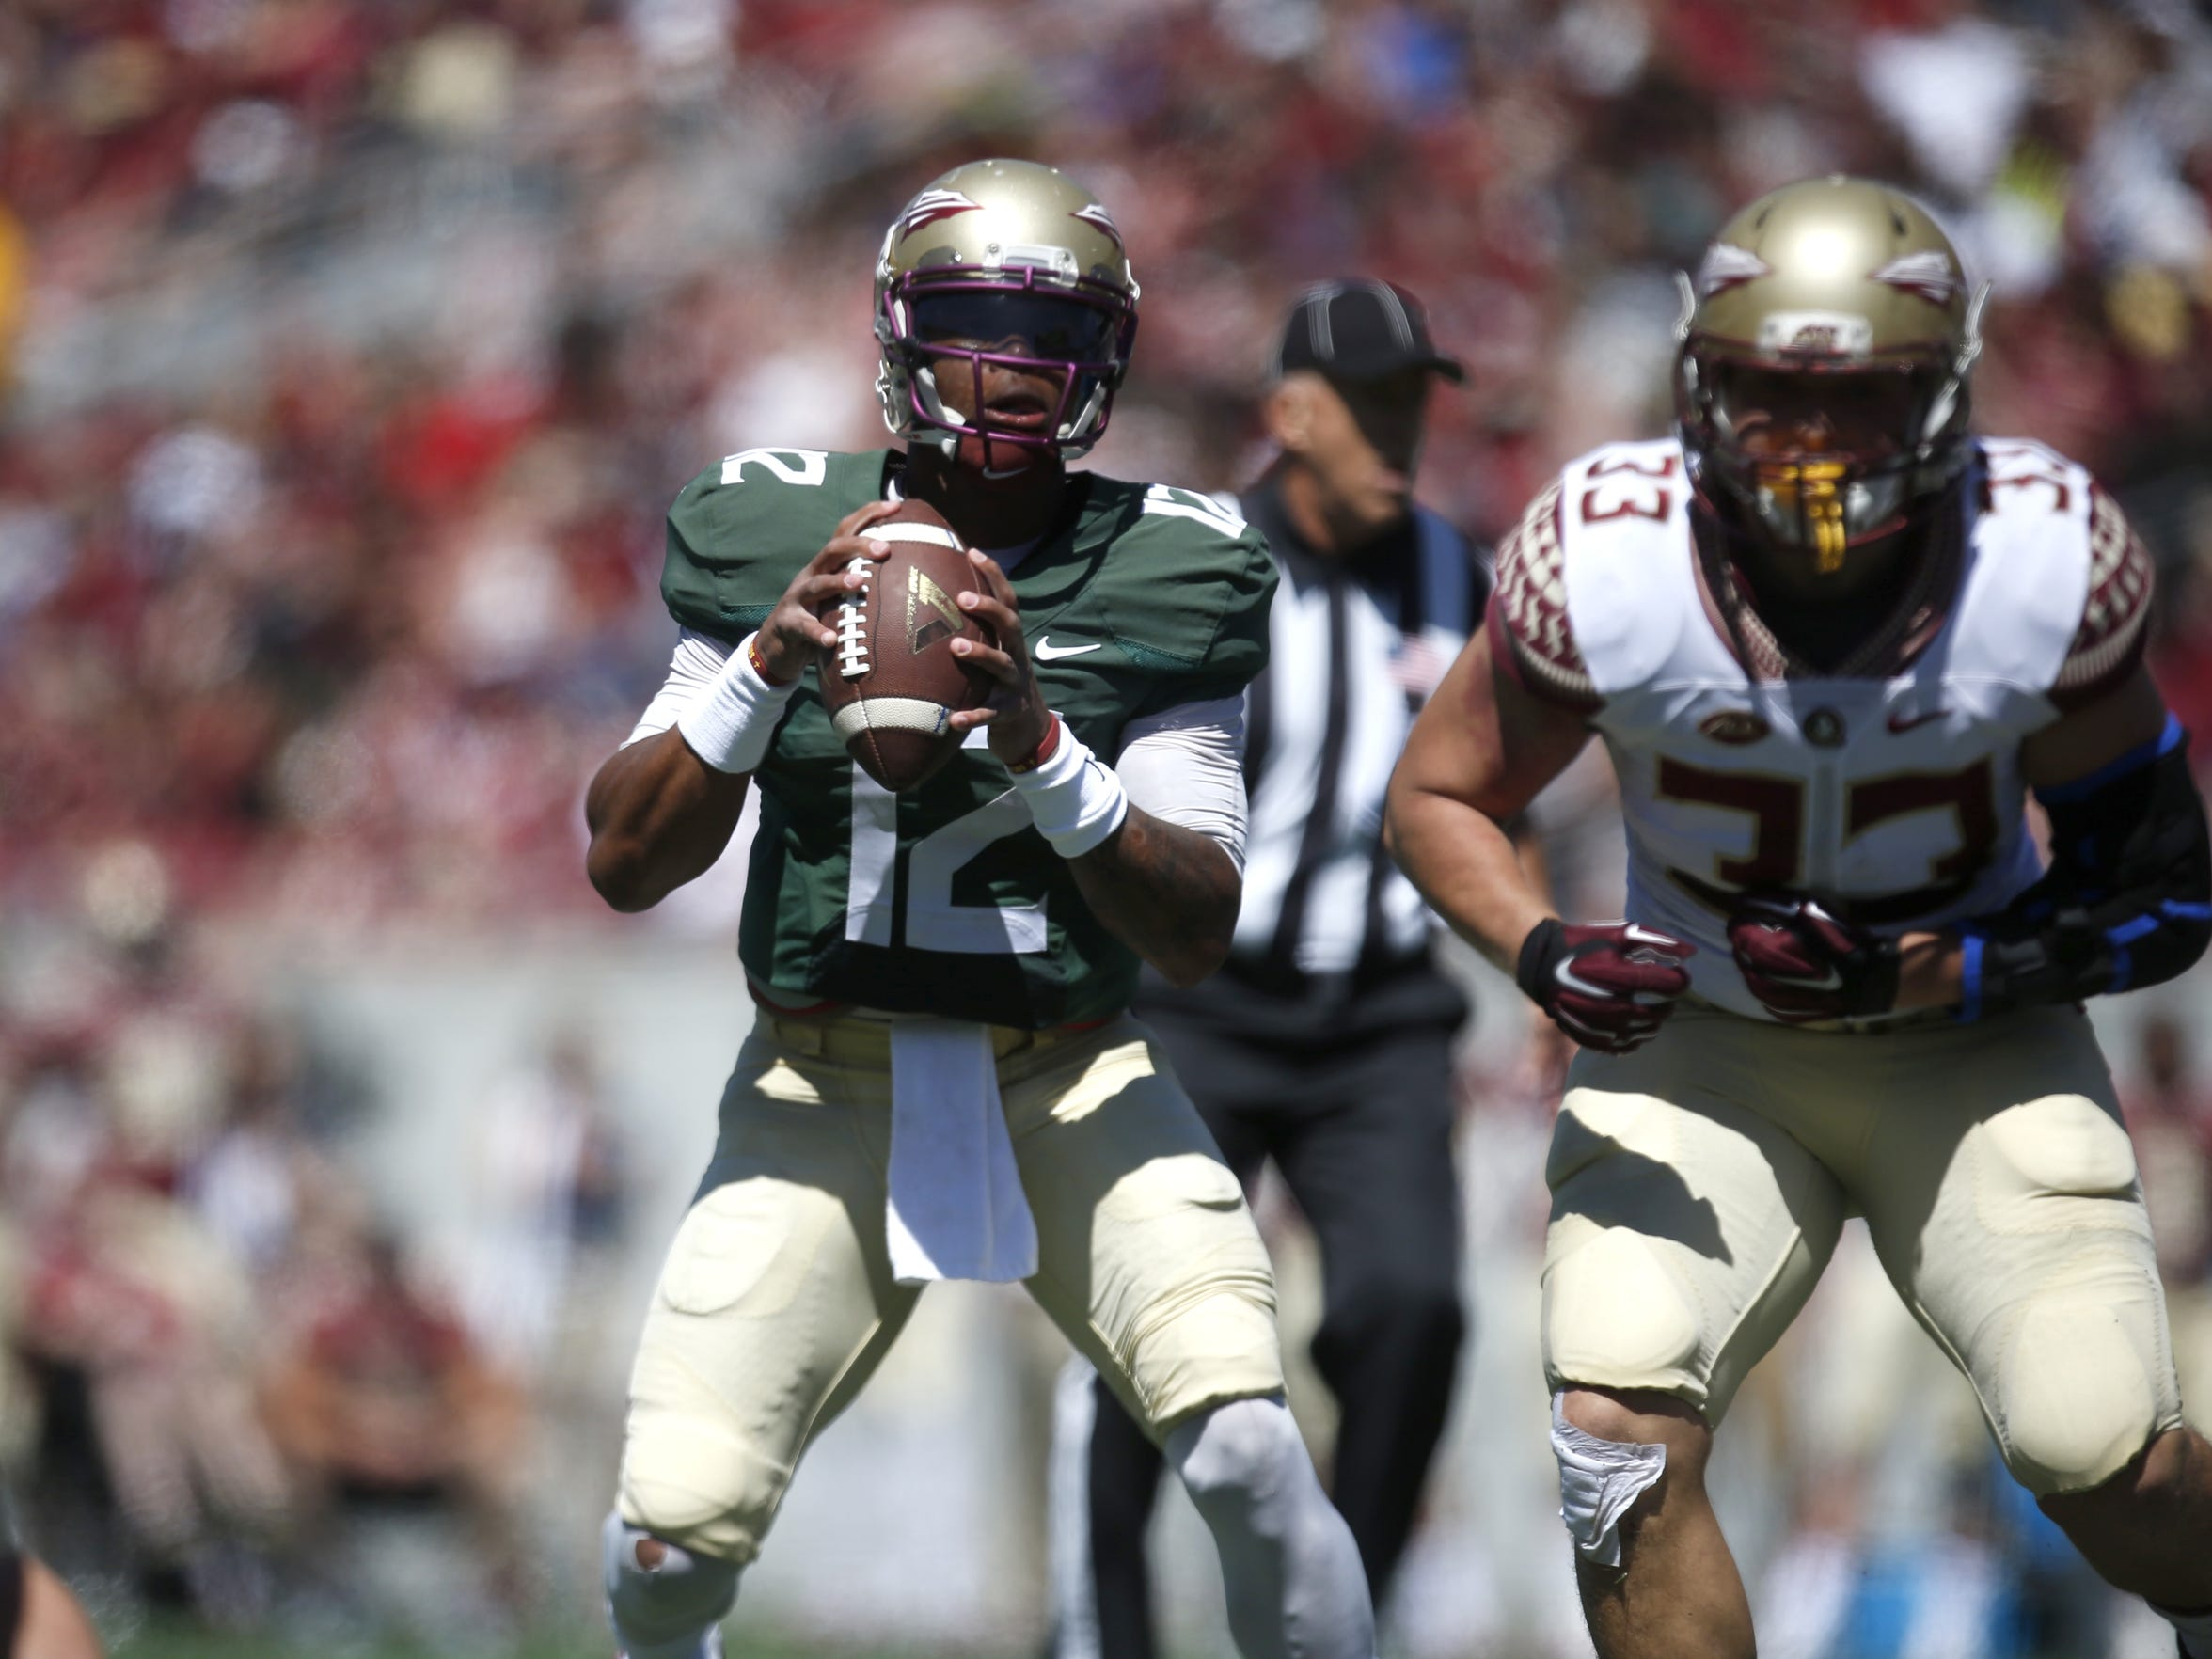 Deondre Francois tossed for 246 yards and two touchdowns in the Spring Game.